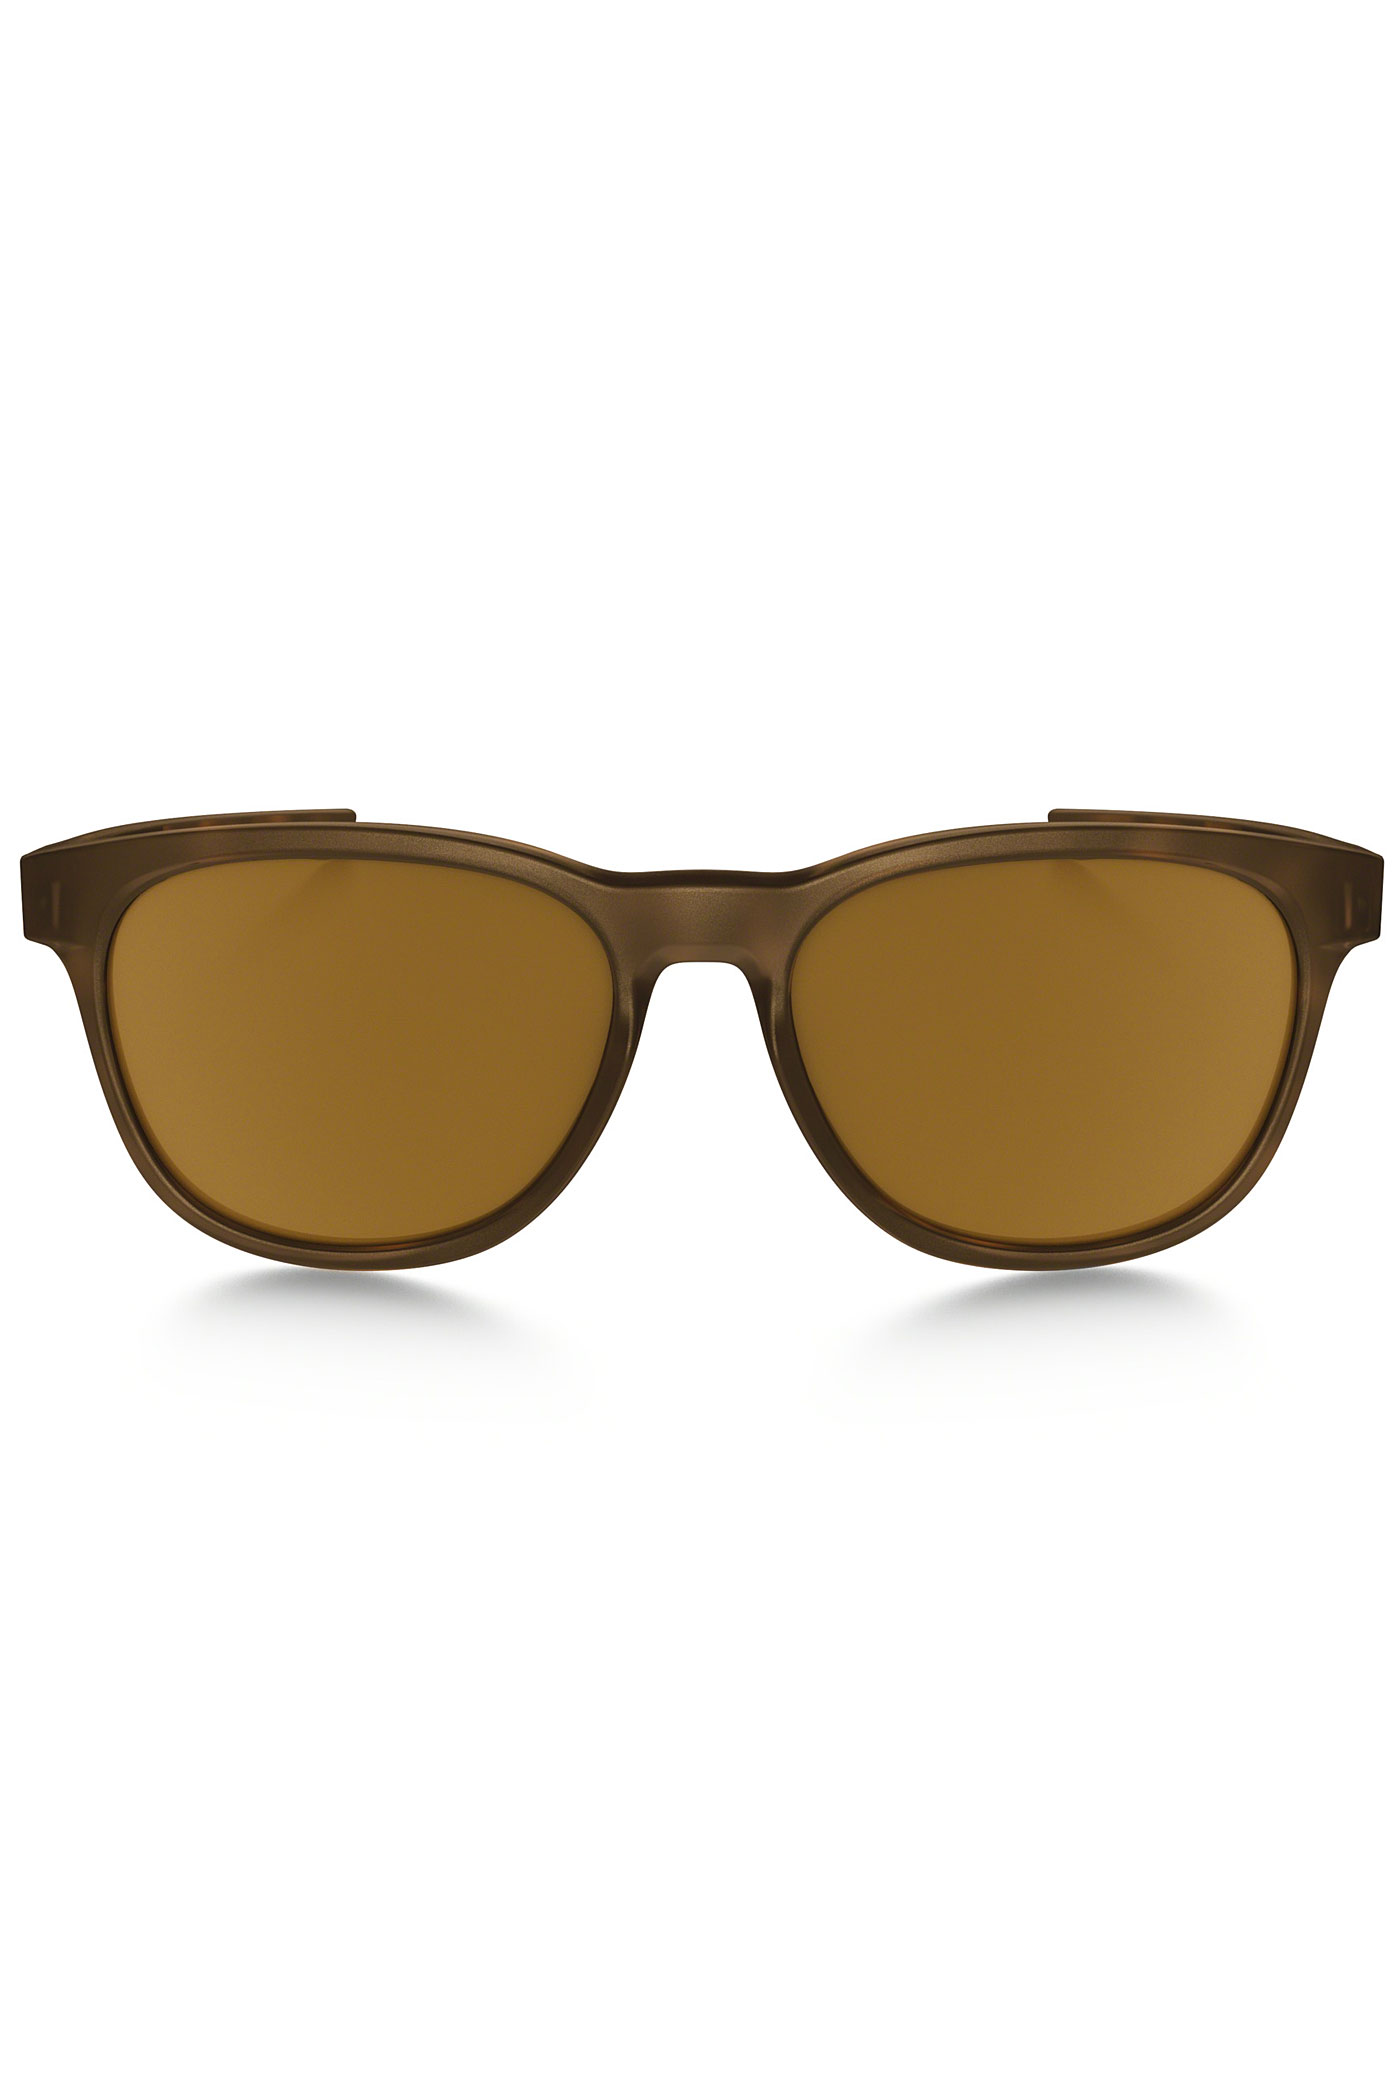 oakley frogskins sunglasses eric  oakley stringer sunglasses (matte brown tortoise dark bronze)